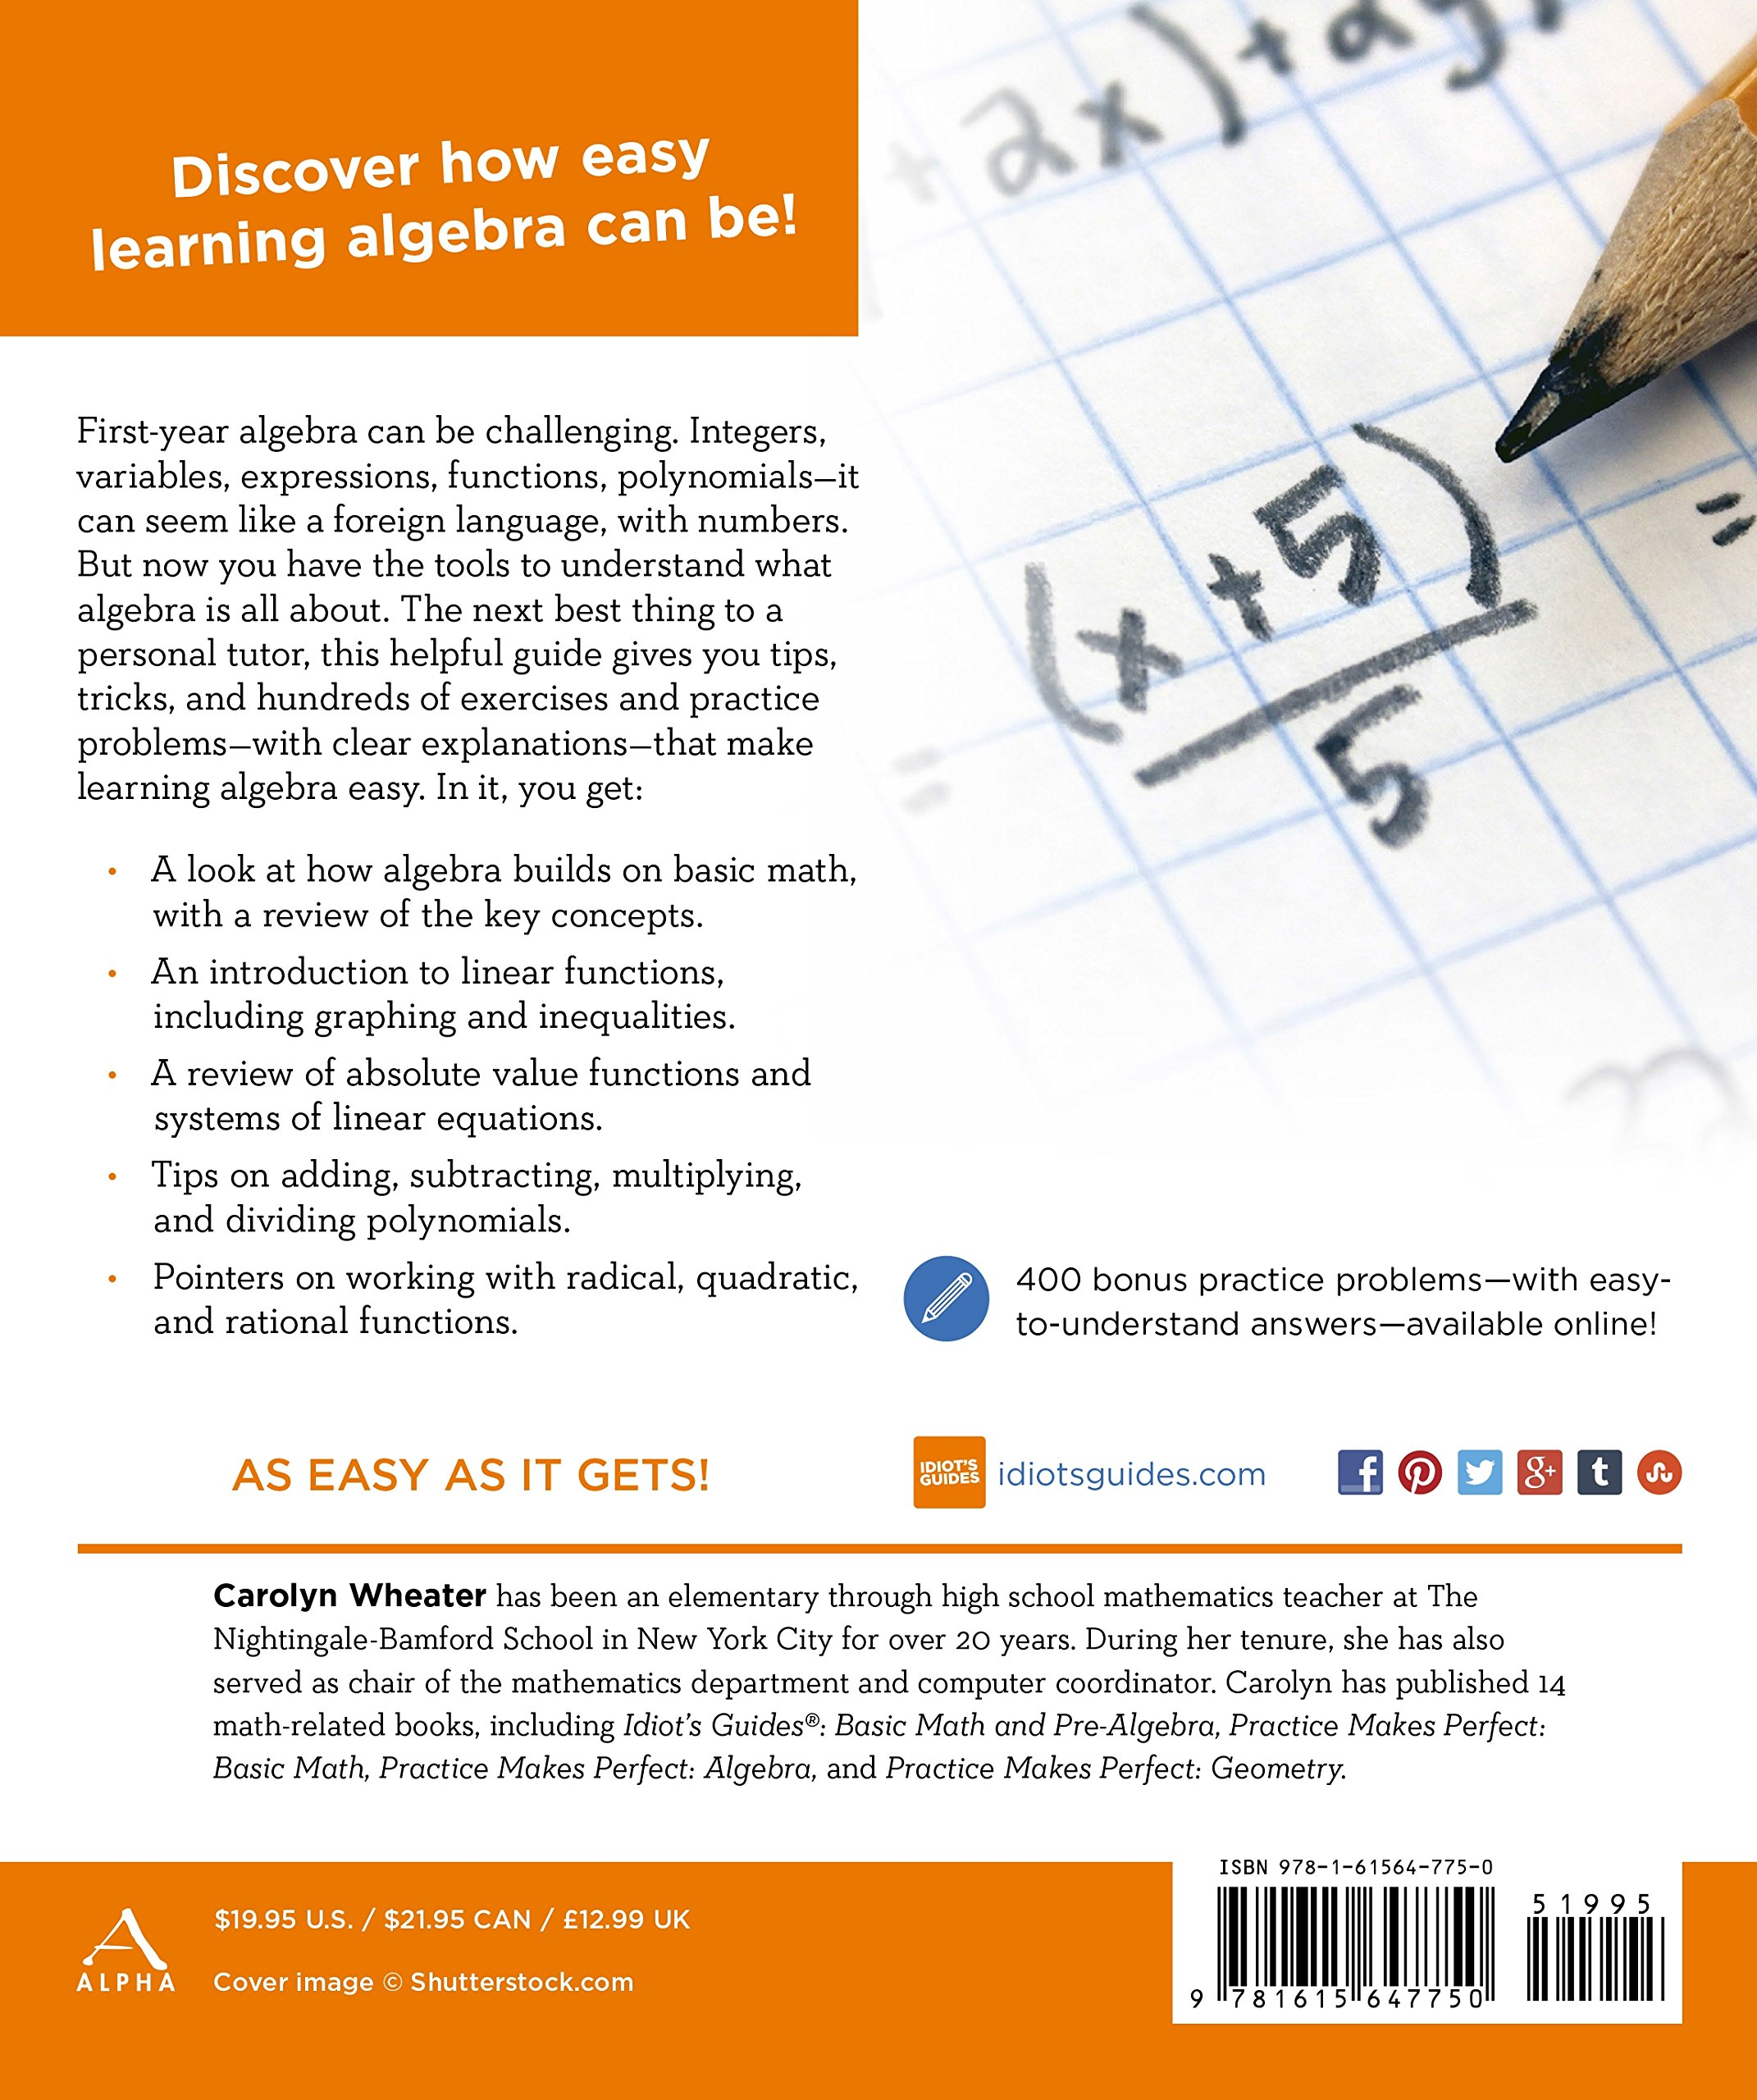 Algebra I (Idiot's Guides): Carolyn Wheater: 9781615647750: Amazon.com:  Books